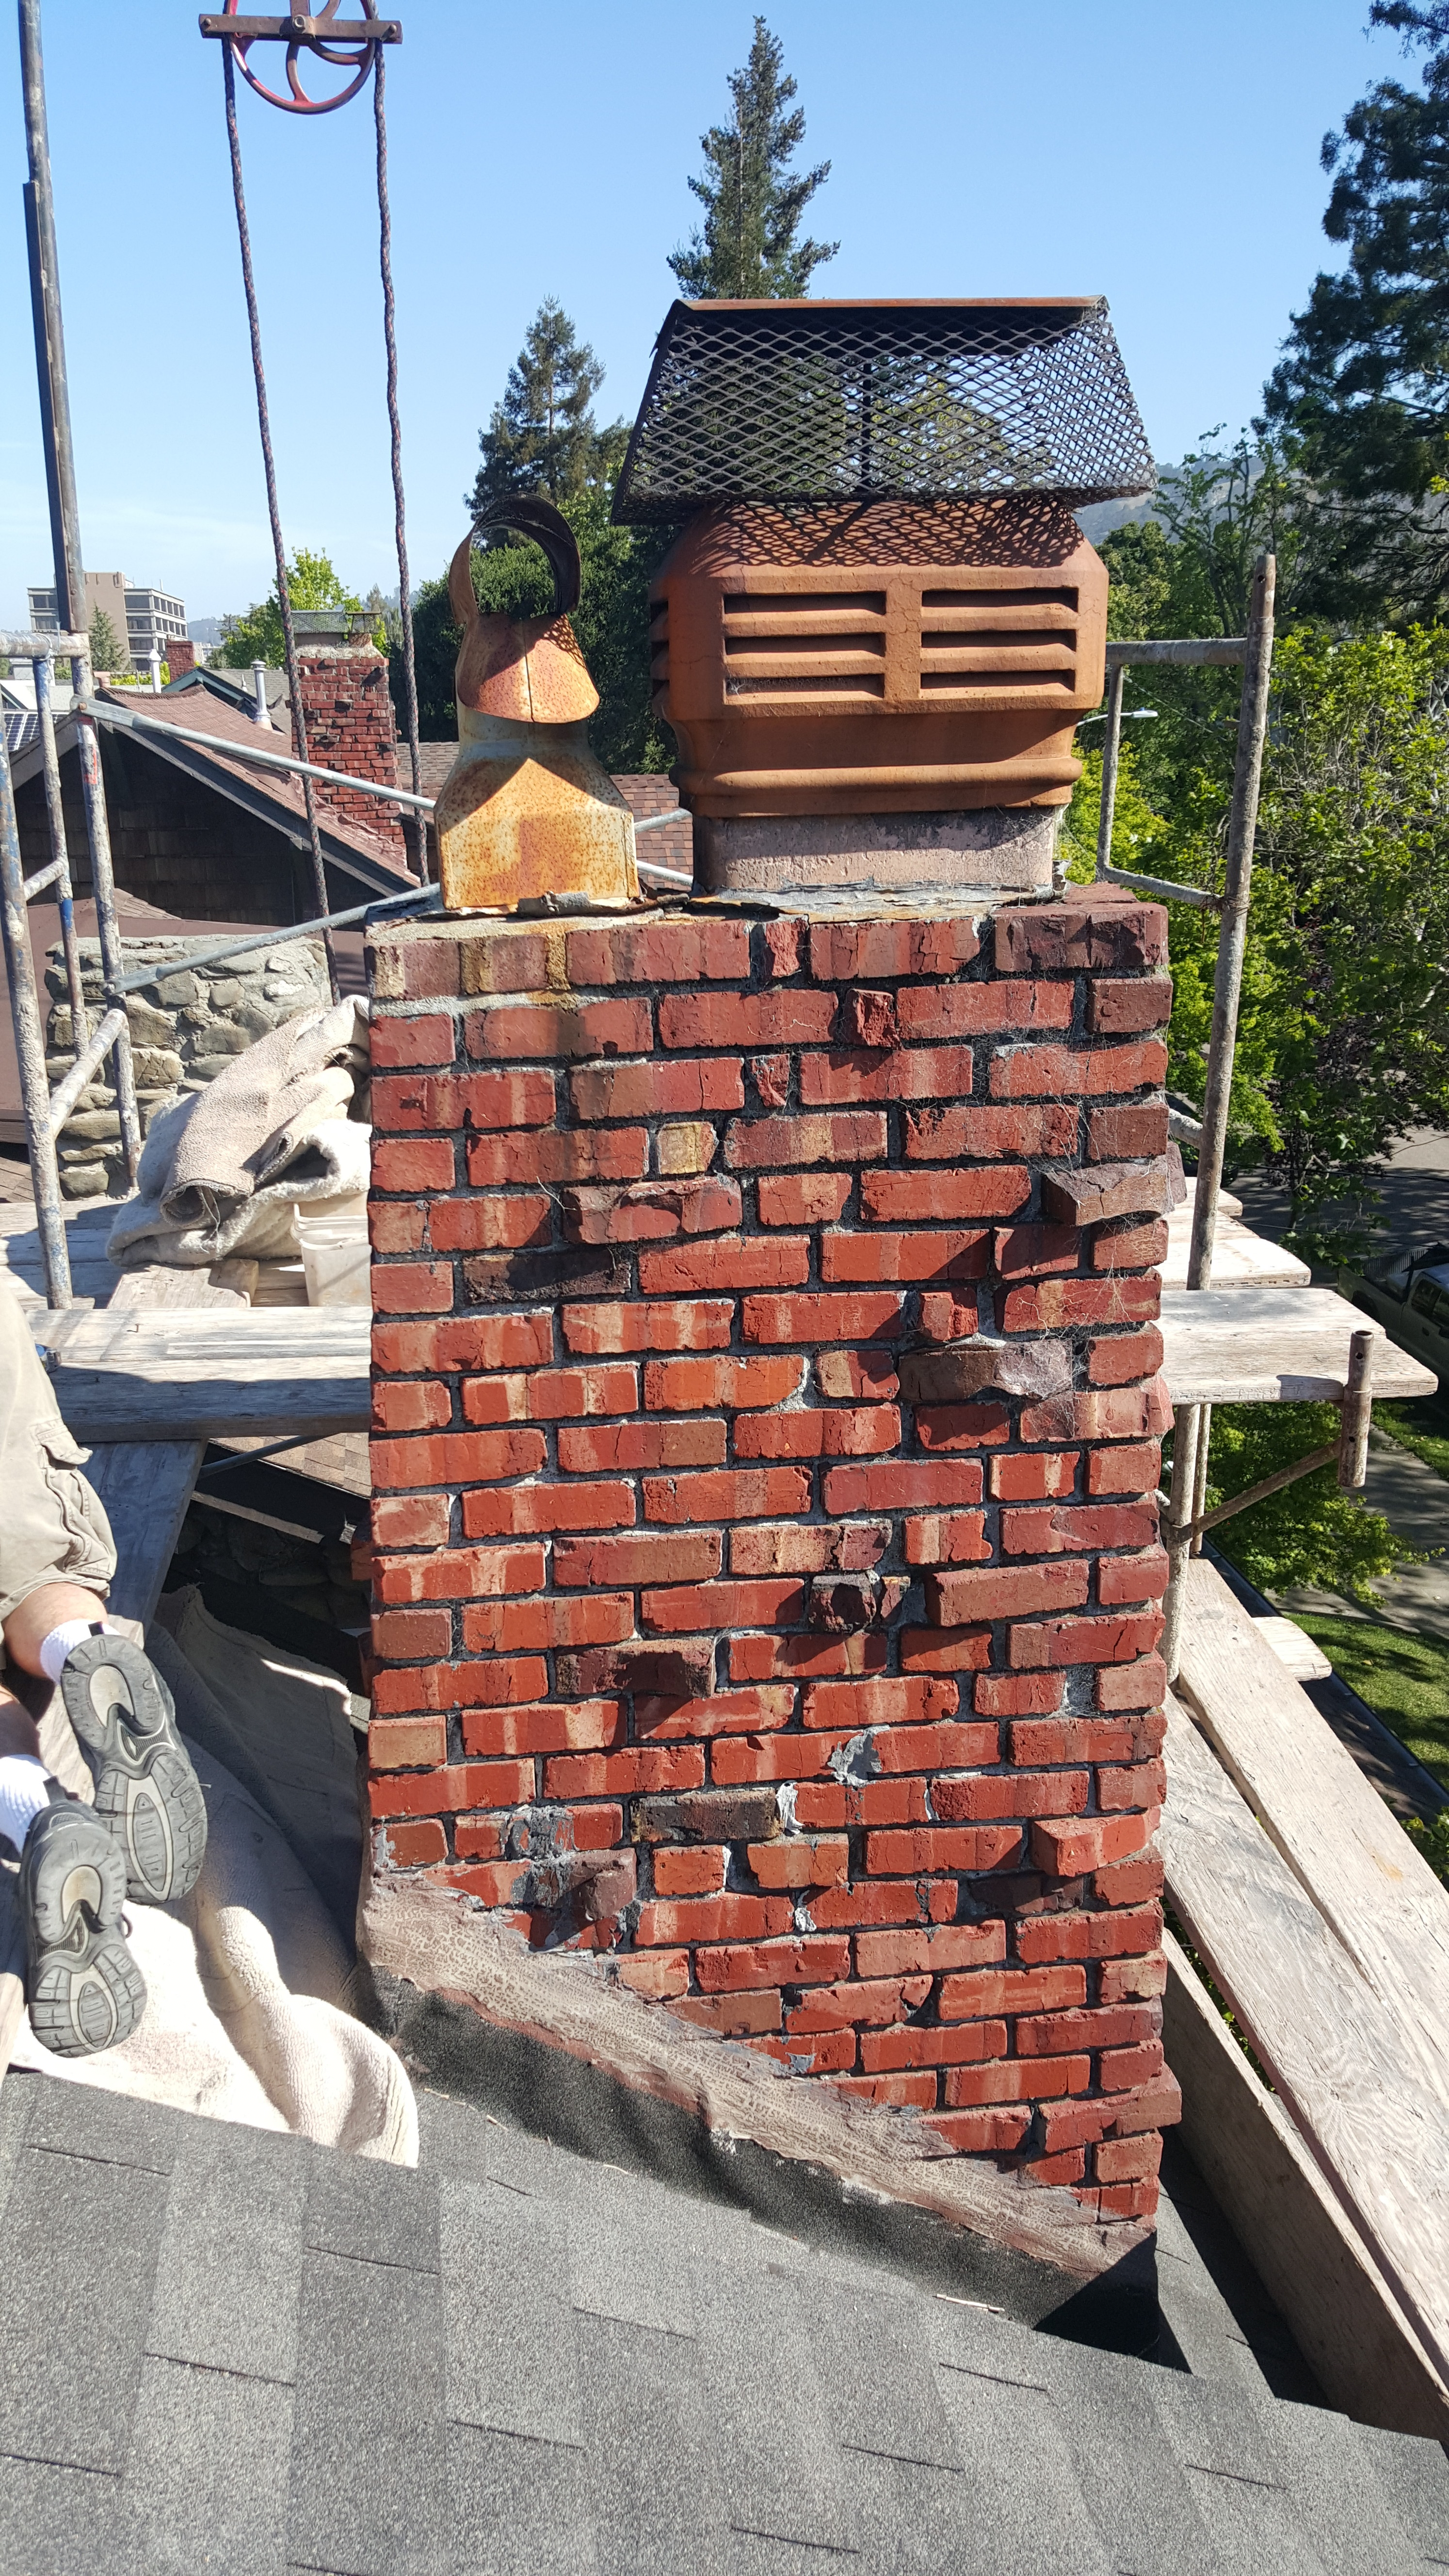 Straps For A Brick Chimney Chimney Pictures To Pin On